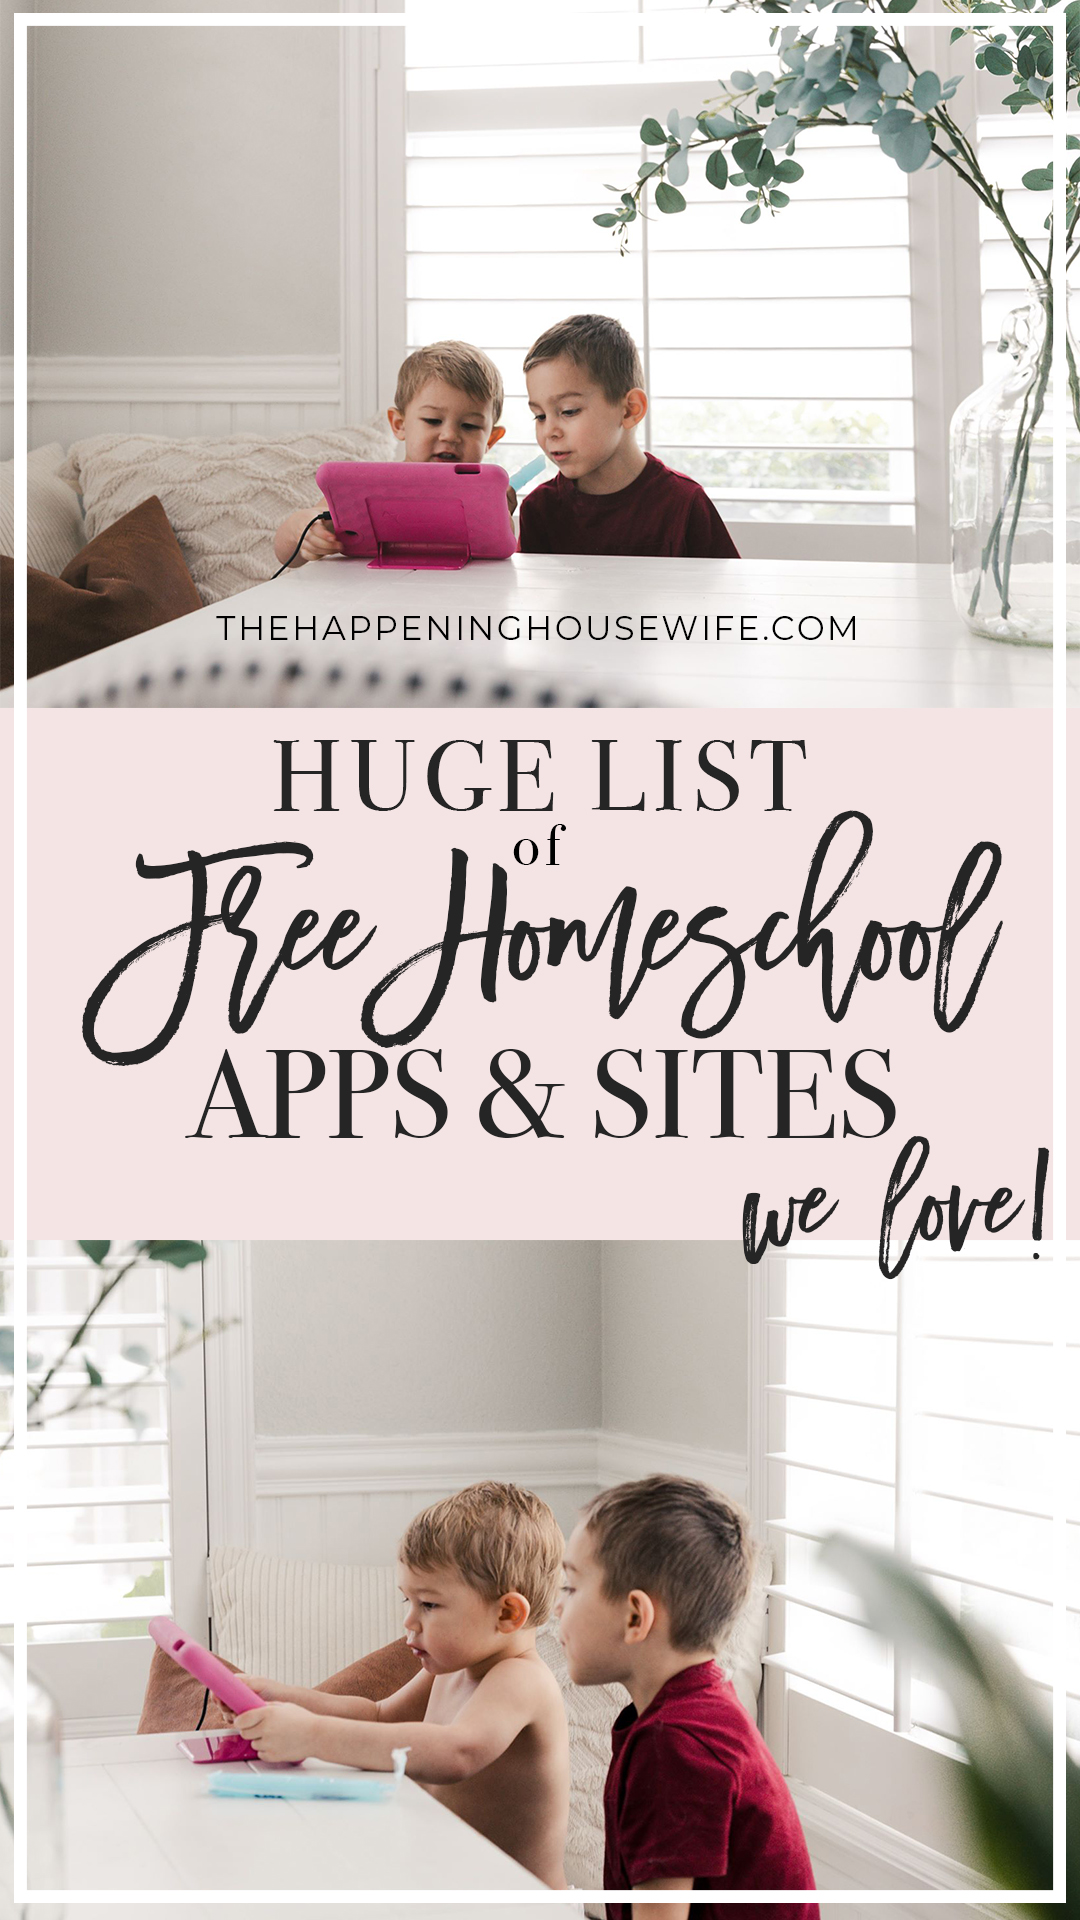 HUGE List of FREE Homeschooling apps and sites for kids!!